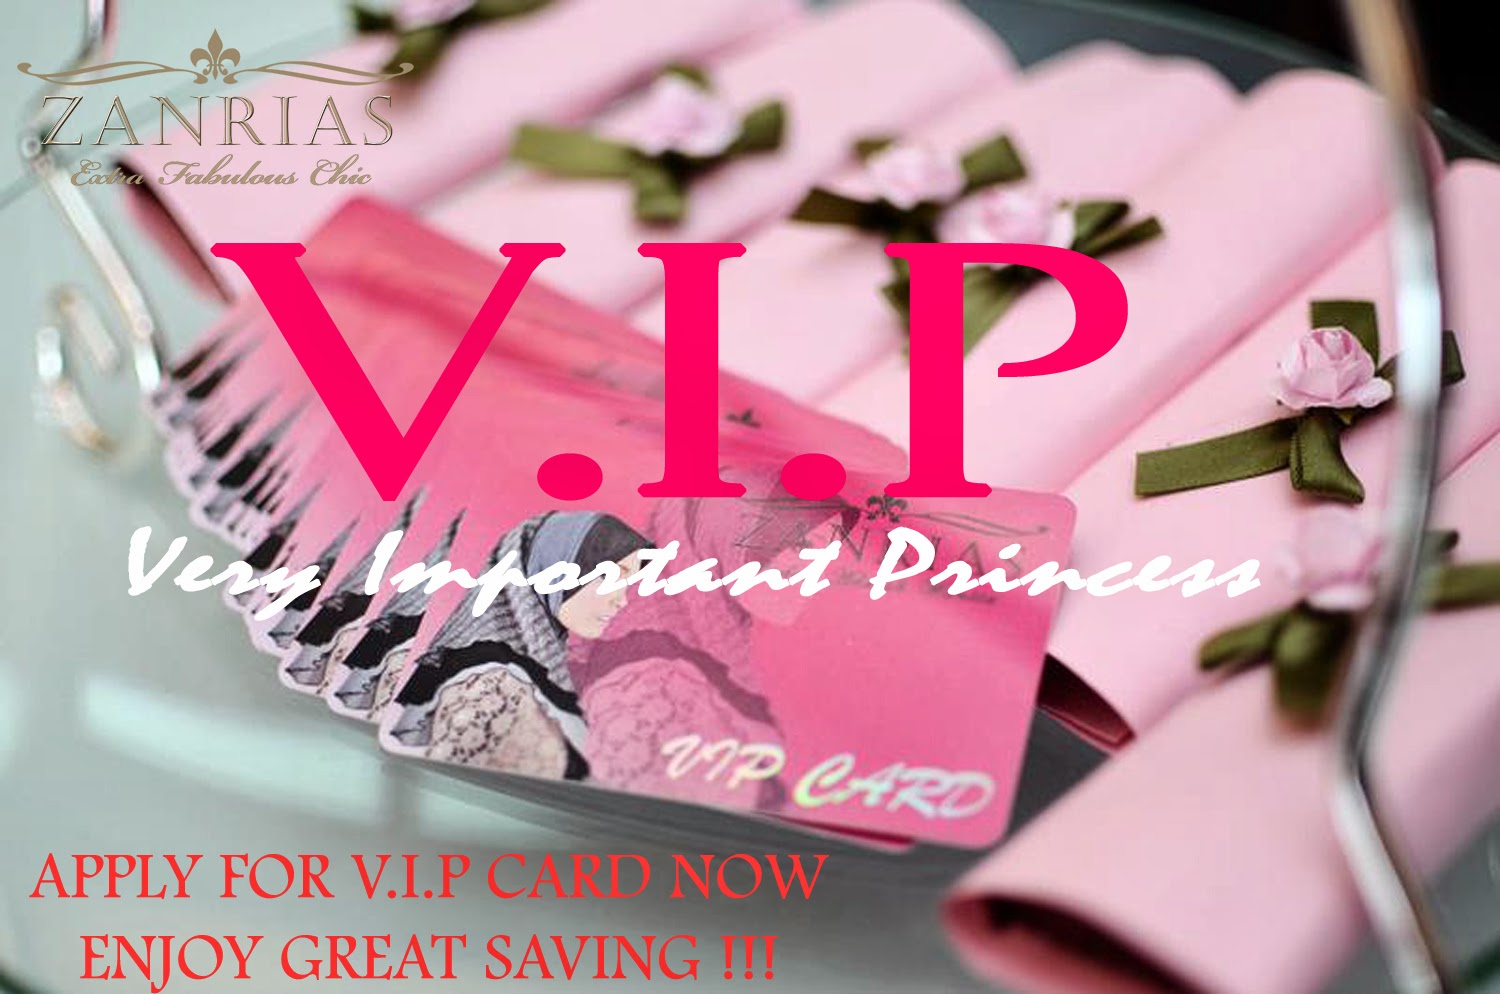 JOIN VIP CARD,PLEASE CLICK LINK BELOW